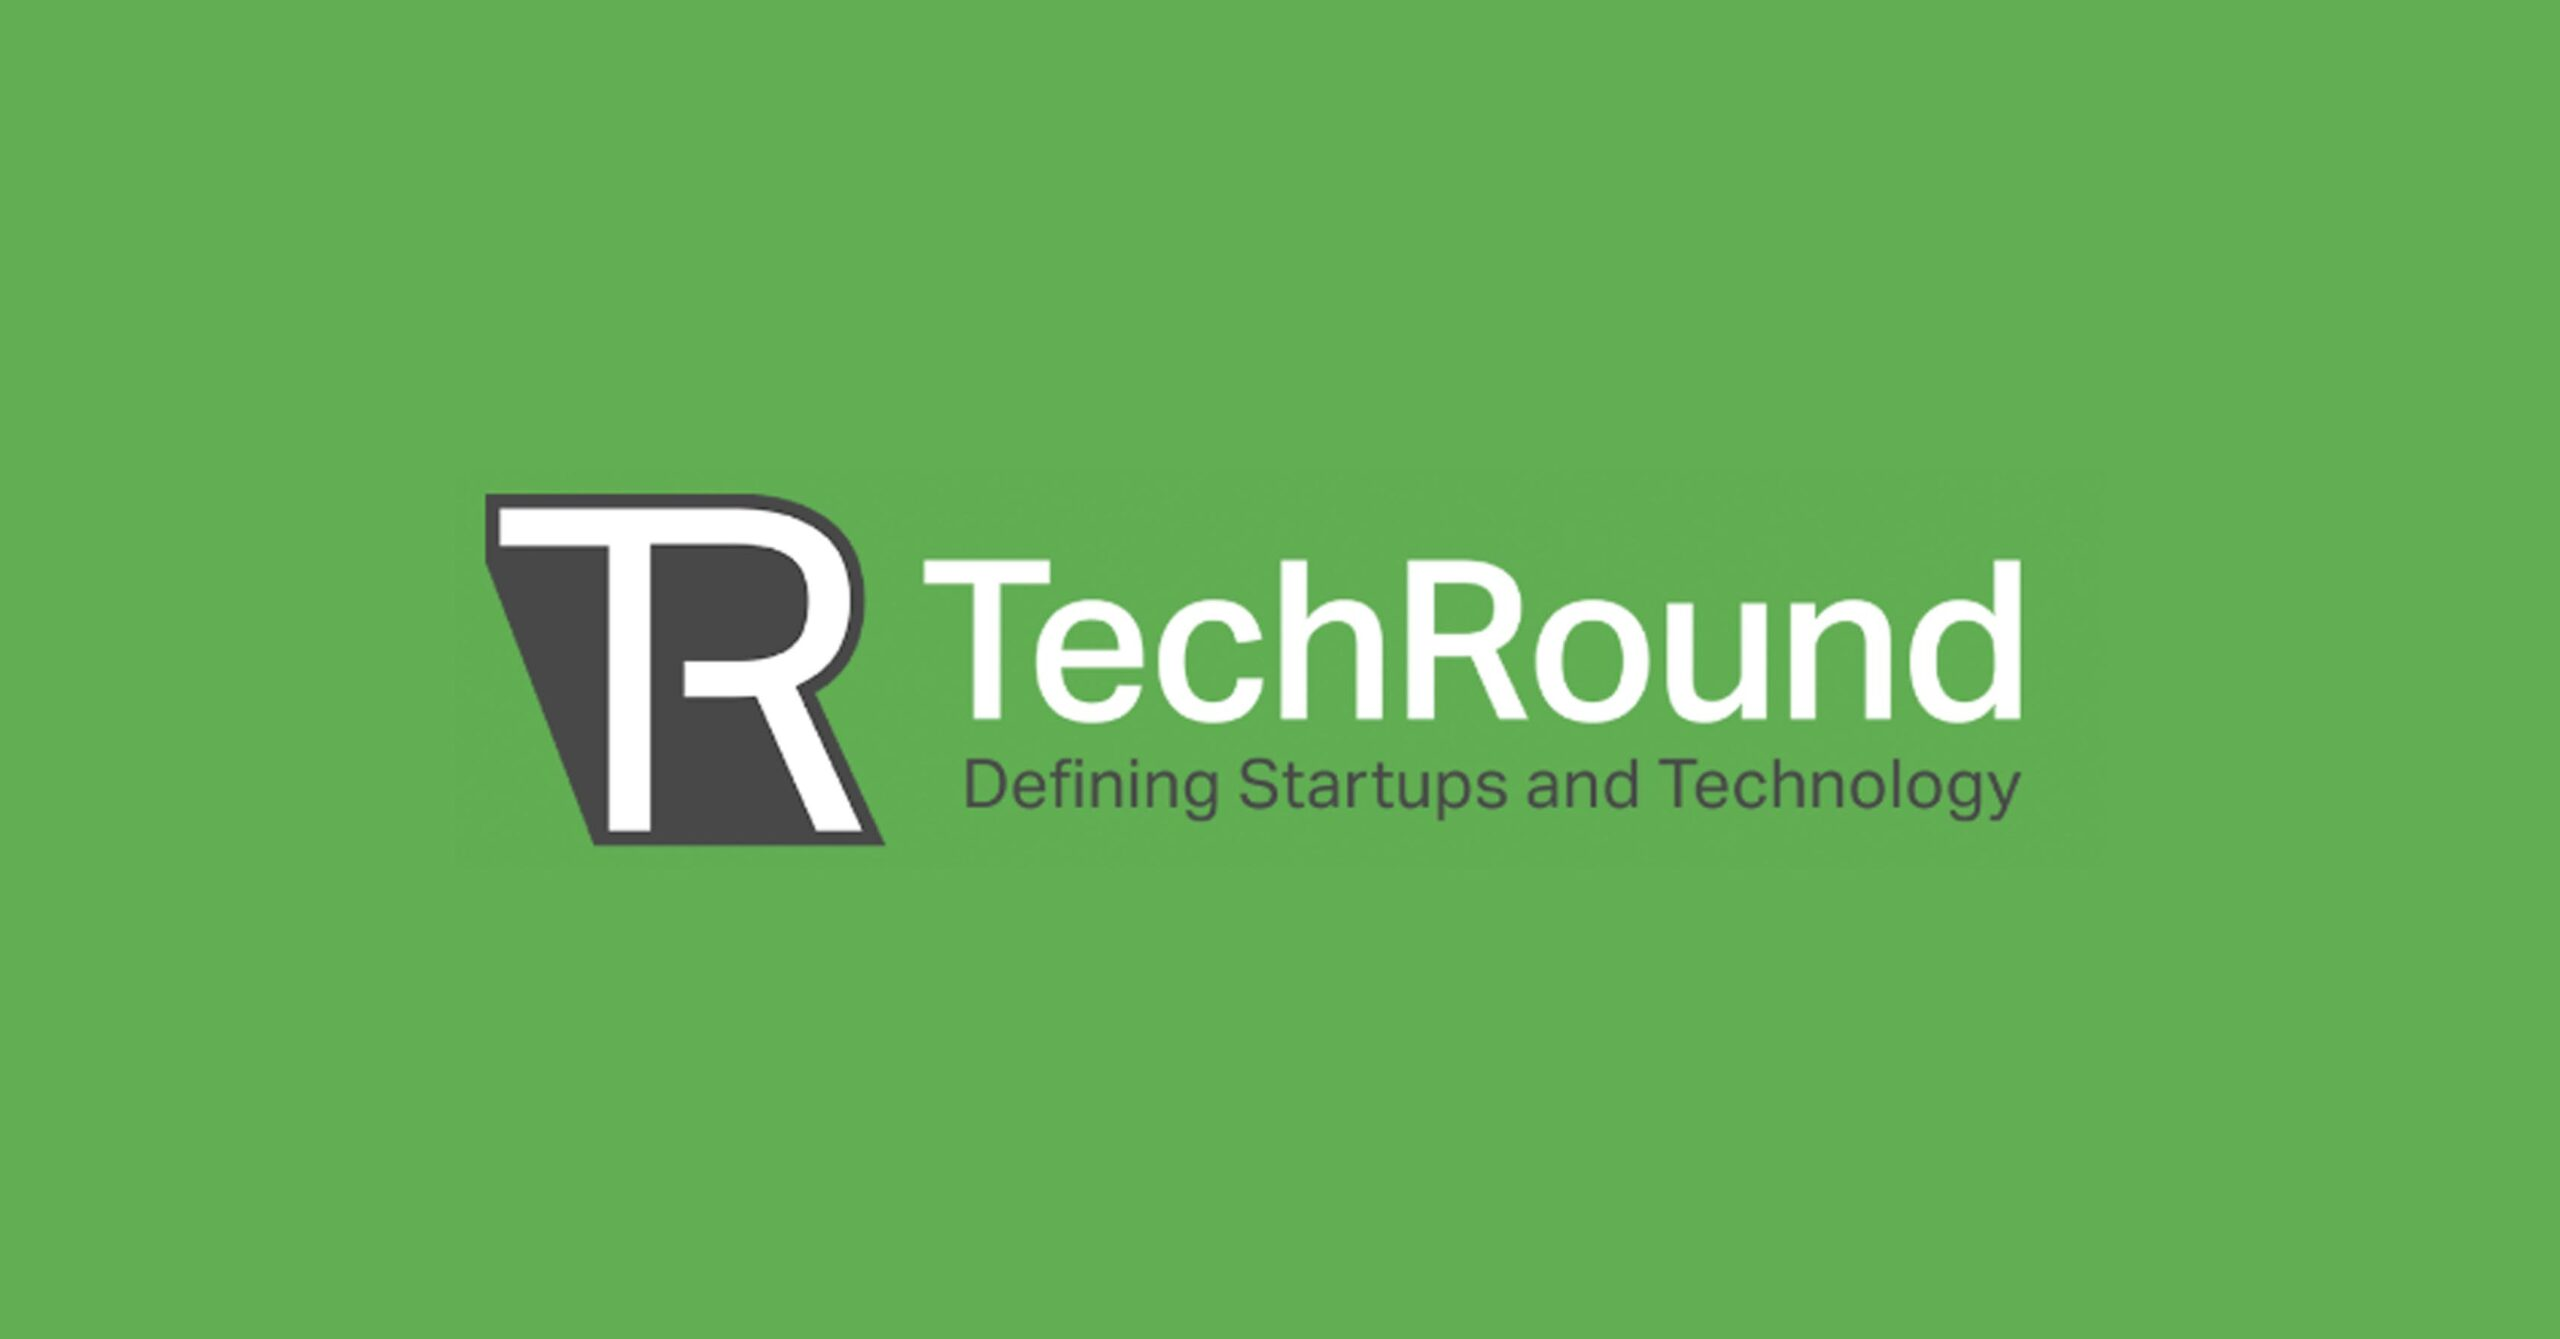 techround.co.uk